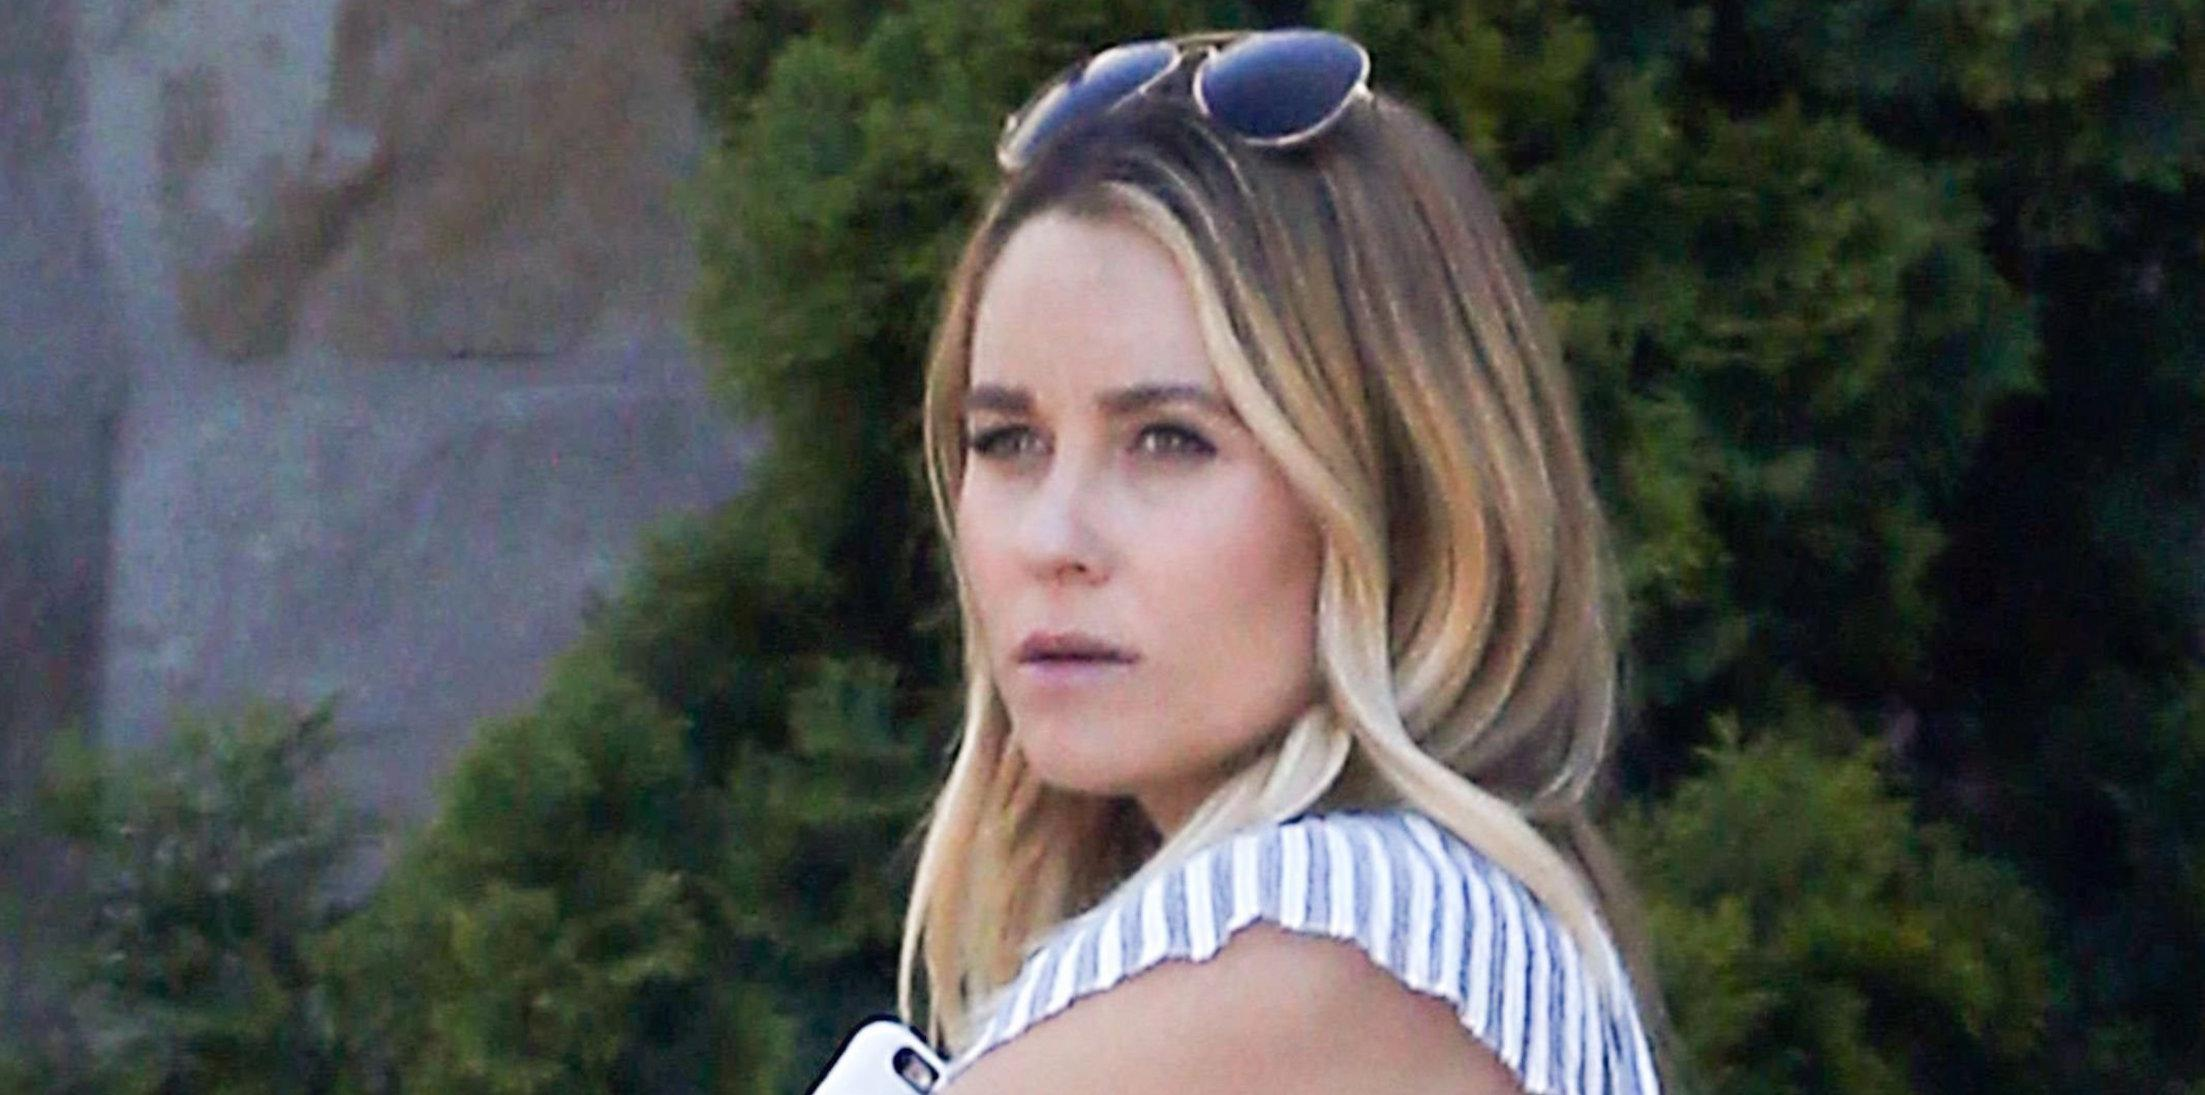 *EXCLUSIVE* Very Pregnant Lauren Conrad looks ready to pop as she attends her Baby Shower